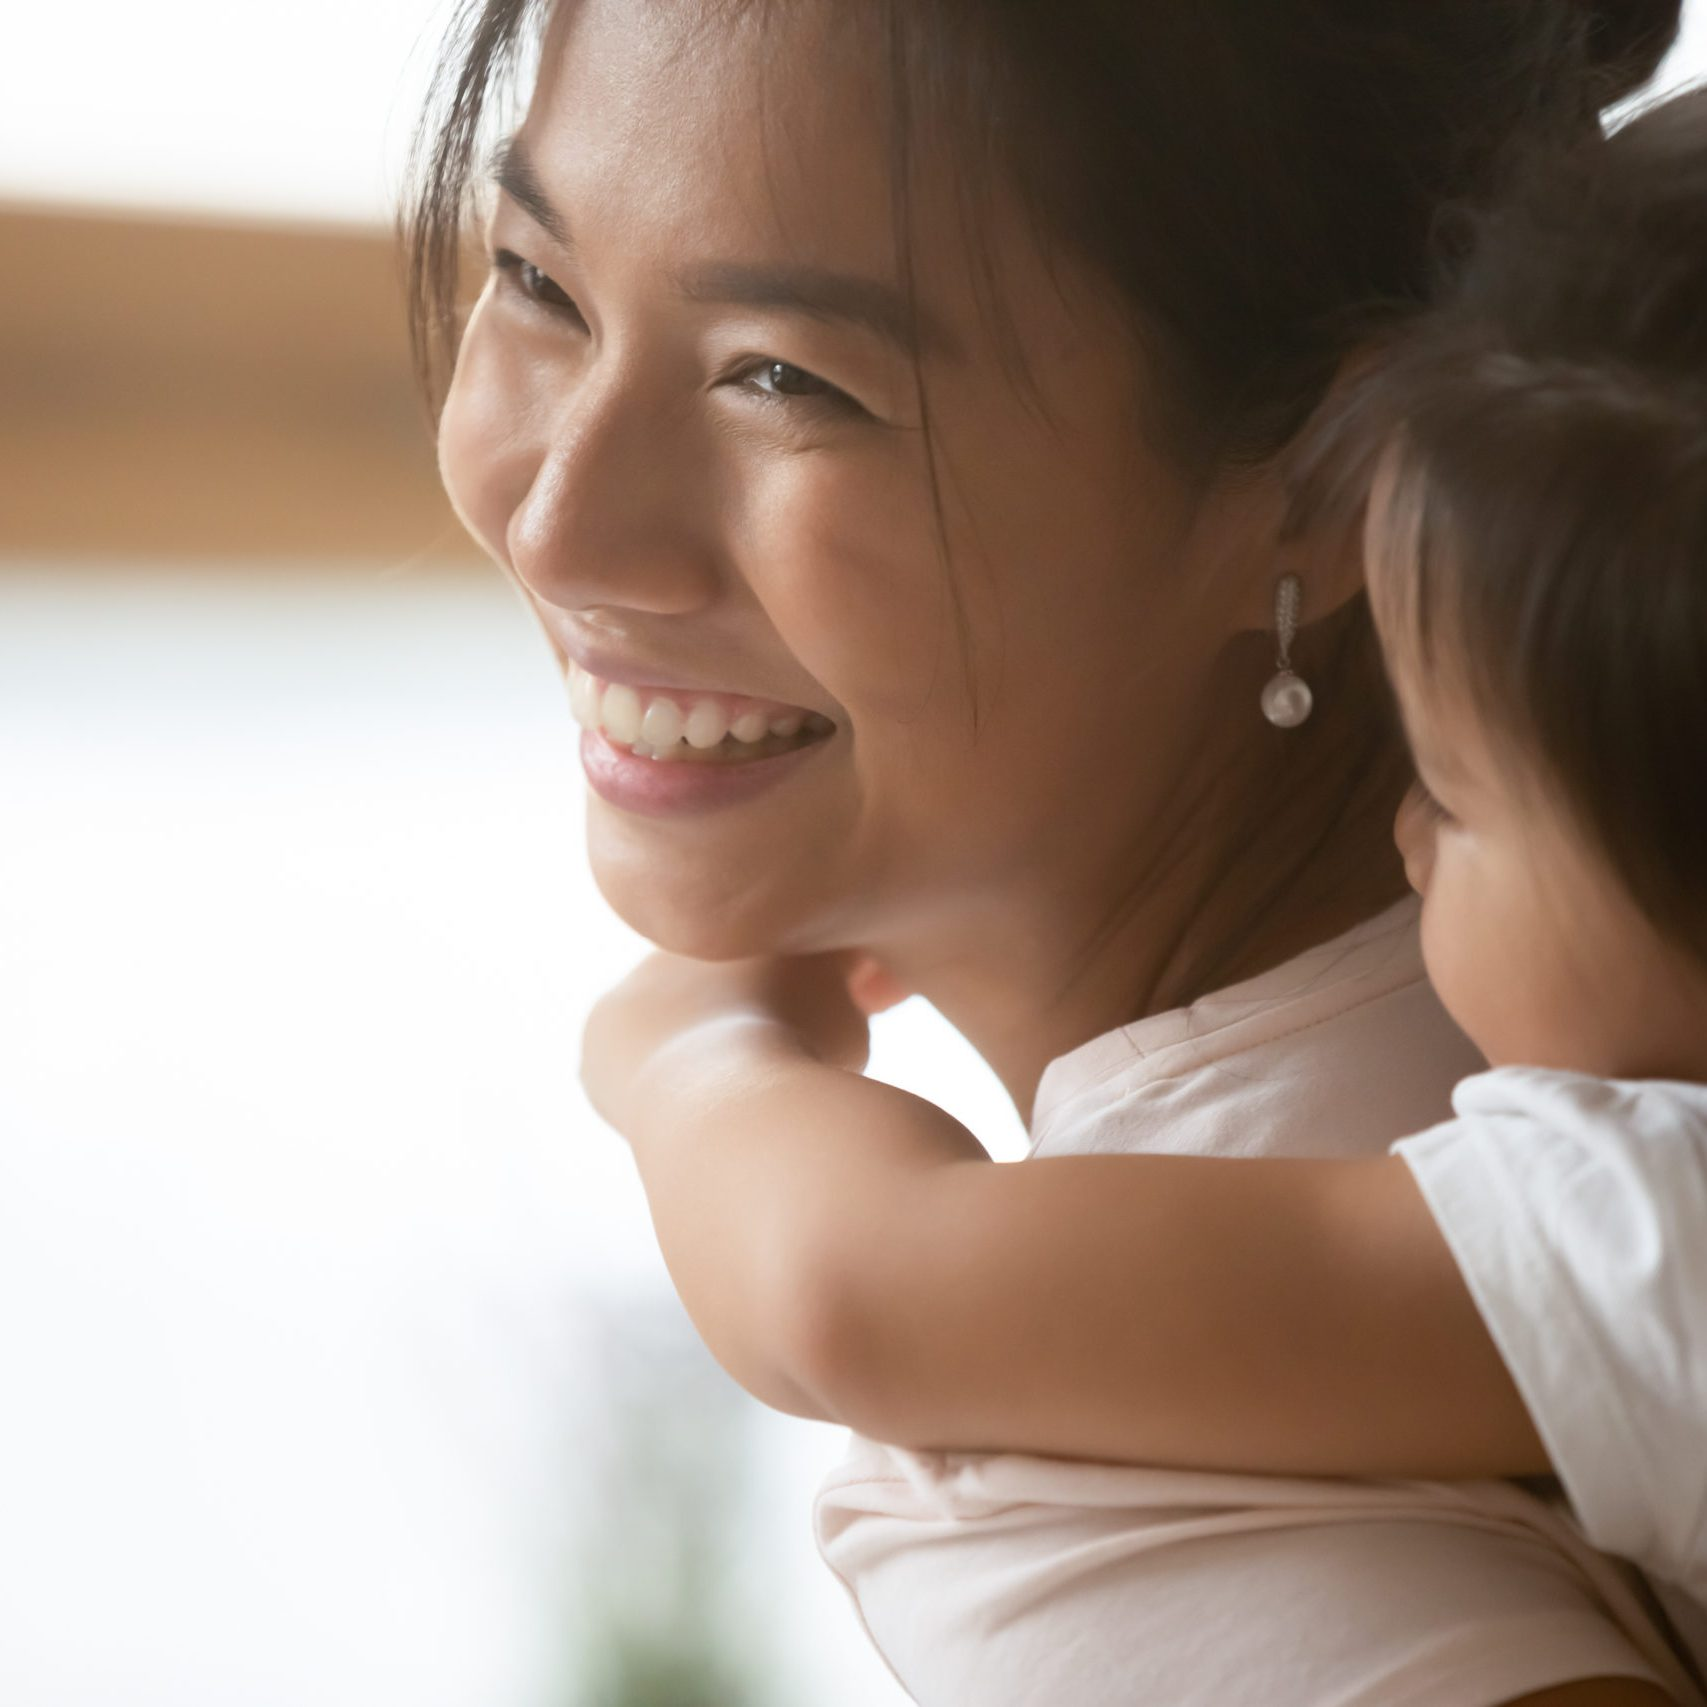 Close up head shot happy young asian ethnicity woman carrying on back cute little baby daughter, smiling biracial female nanny playing with adorable small kid girl indoors, daycare custody concept.